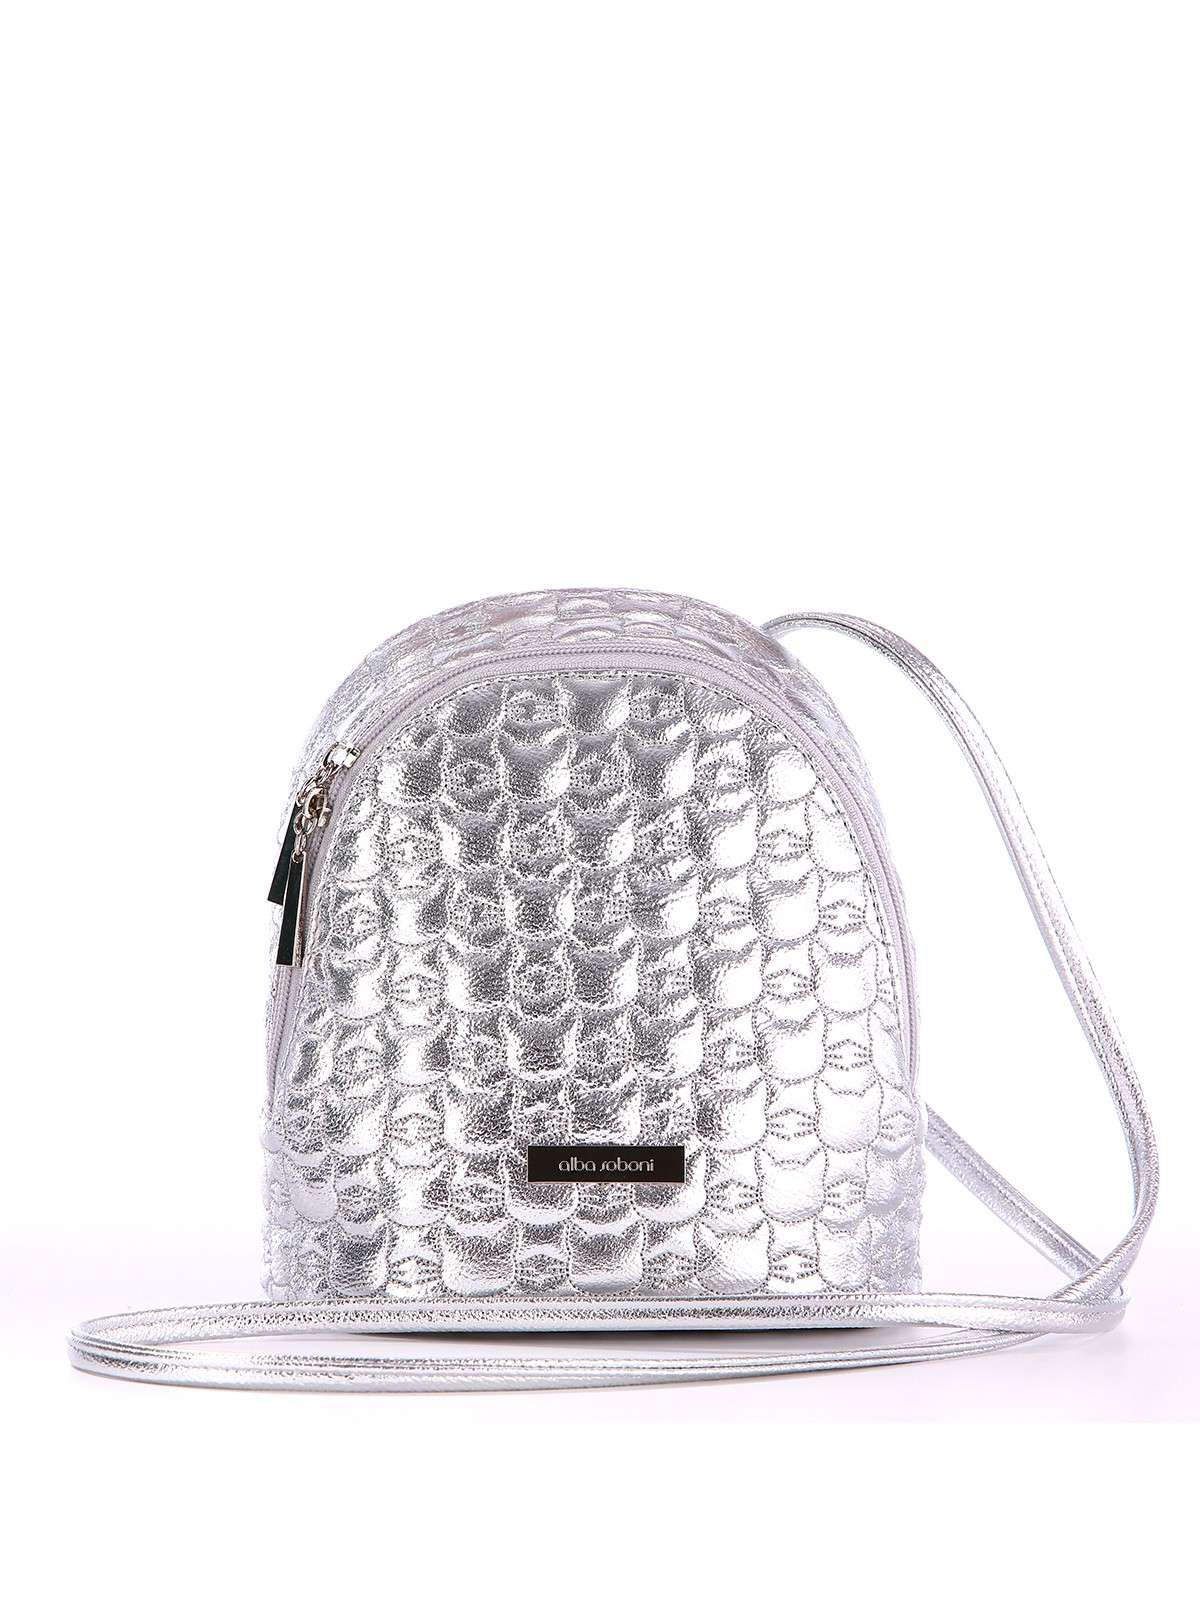 https://alba-soboni.ua/images/store/product-ru/bags-for-children-2018-backpack-1802-silver-1.jpg